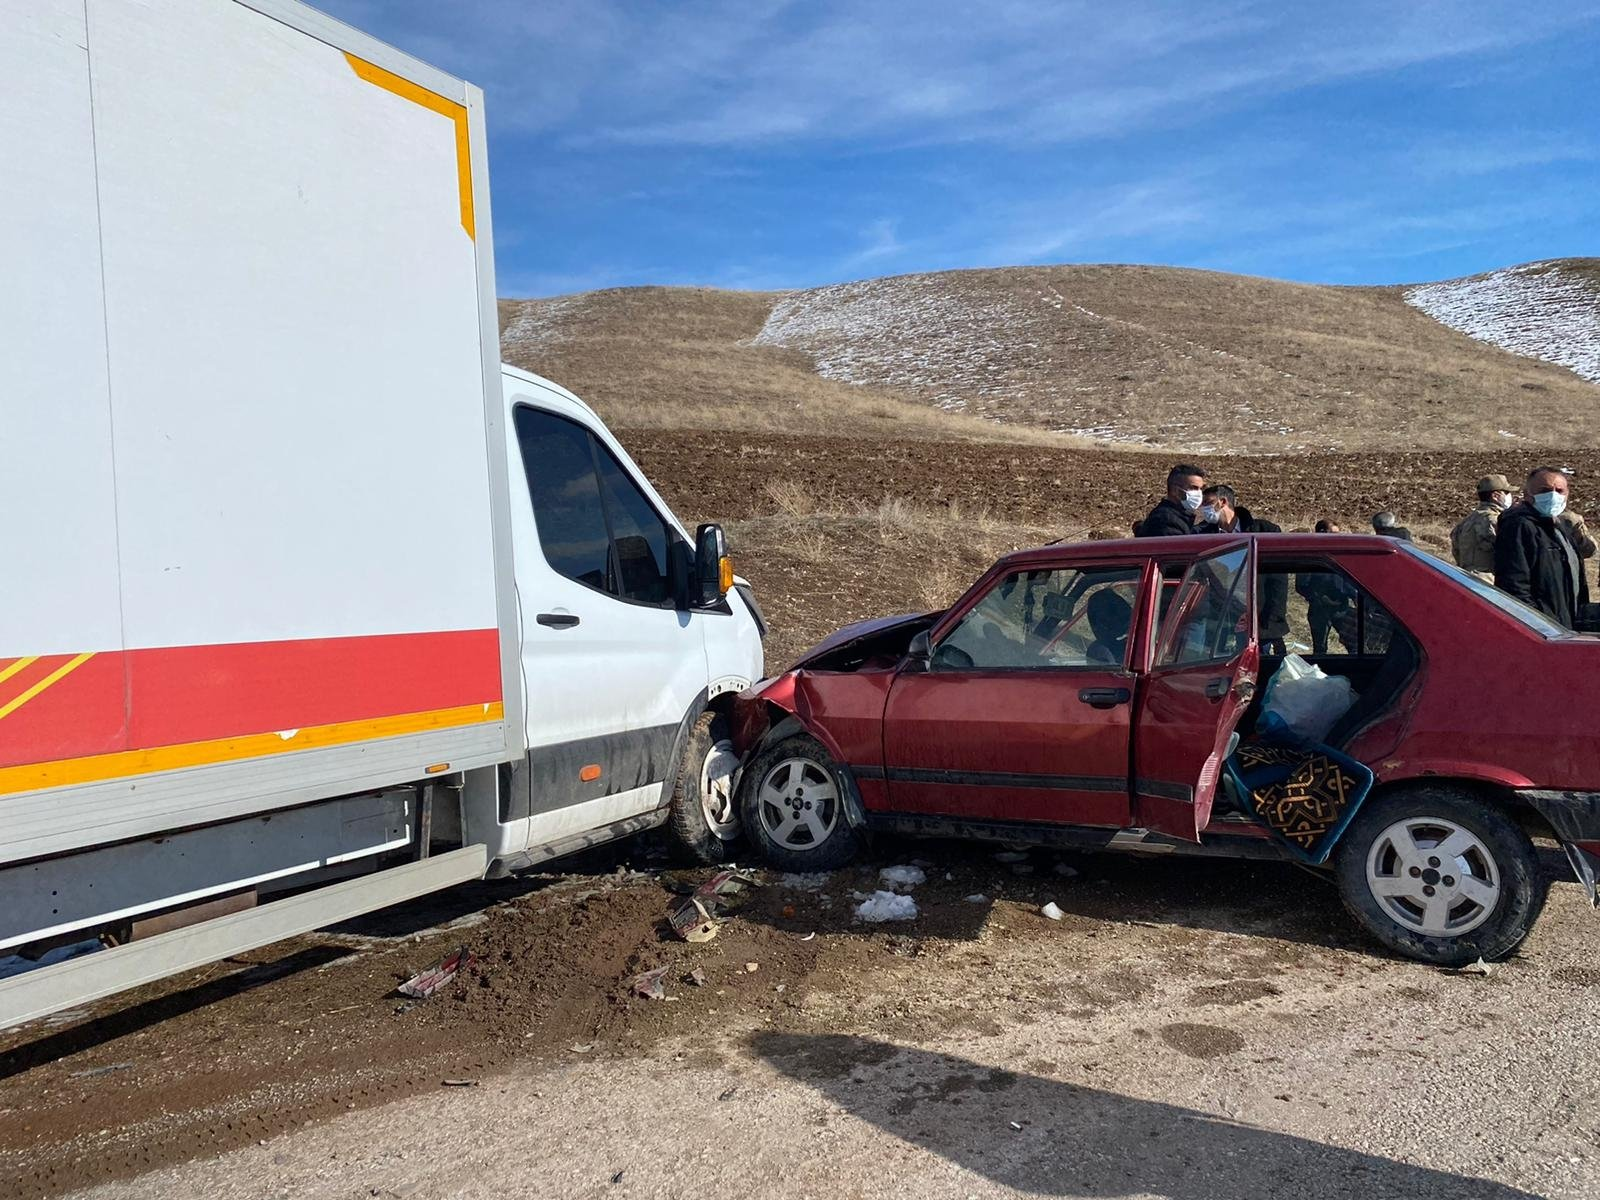 The two vehicles collided, injuring six people, in Erzincan, northeastern Turkey, Feb. 2, 2021. (AA PHOTO)